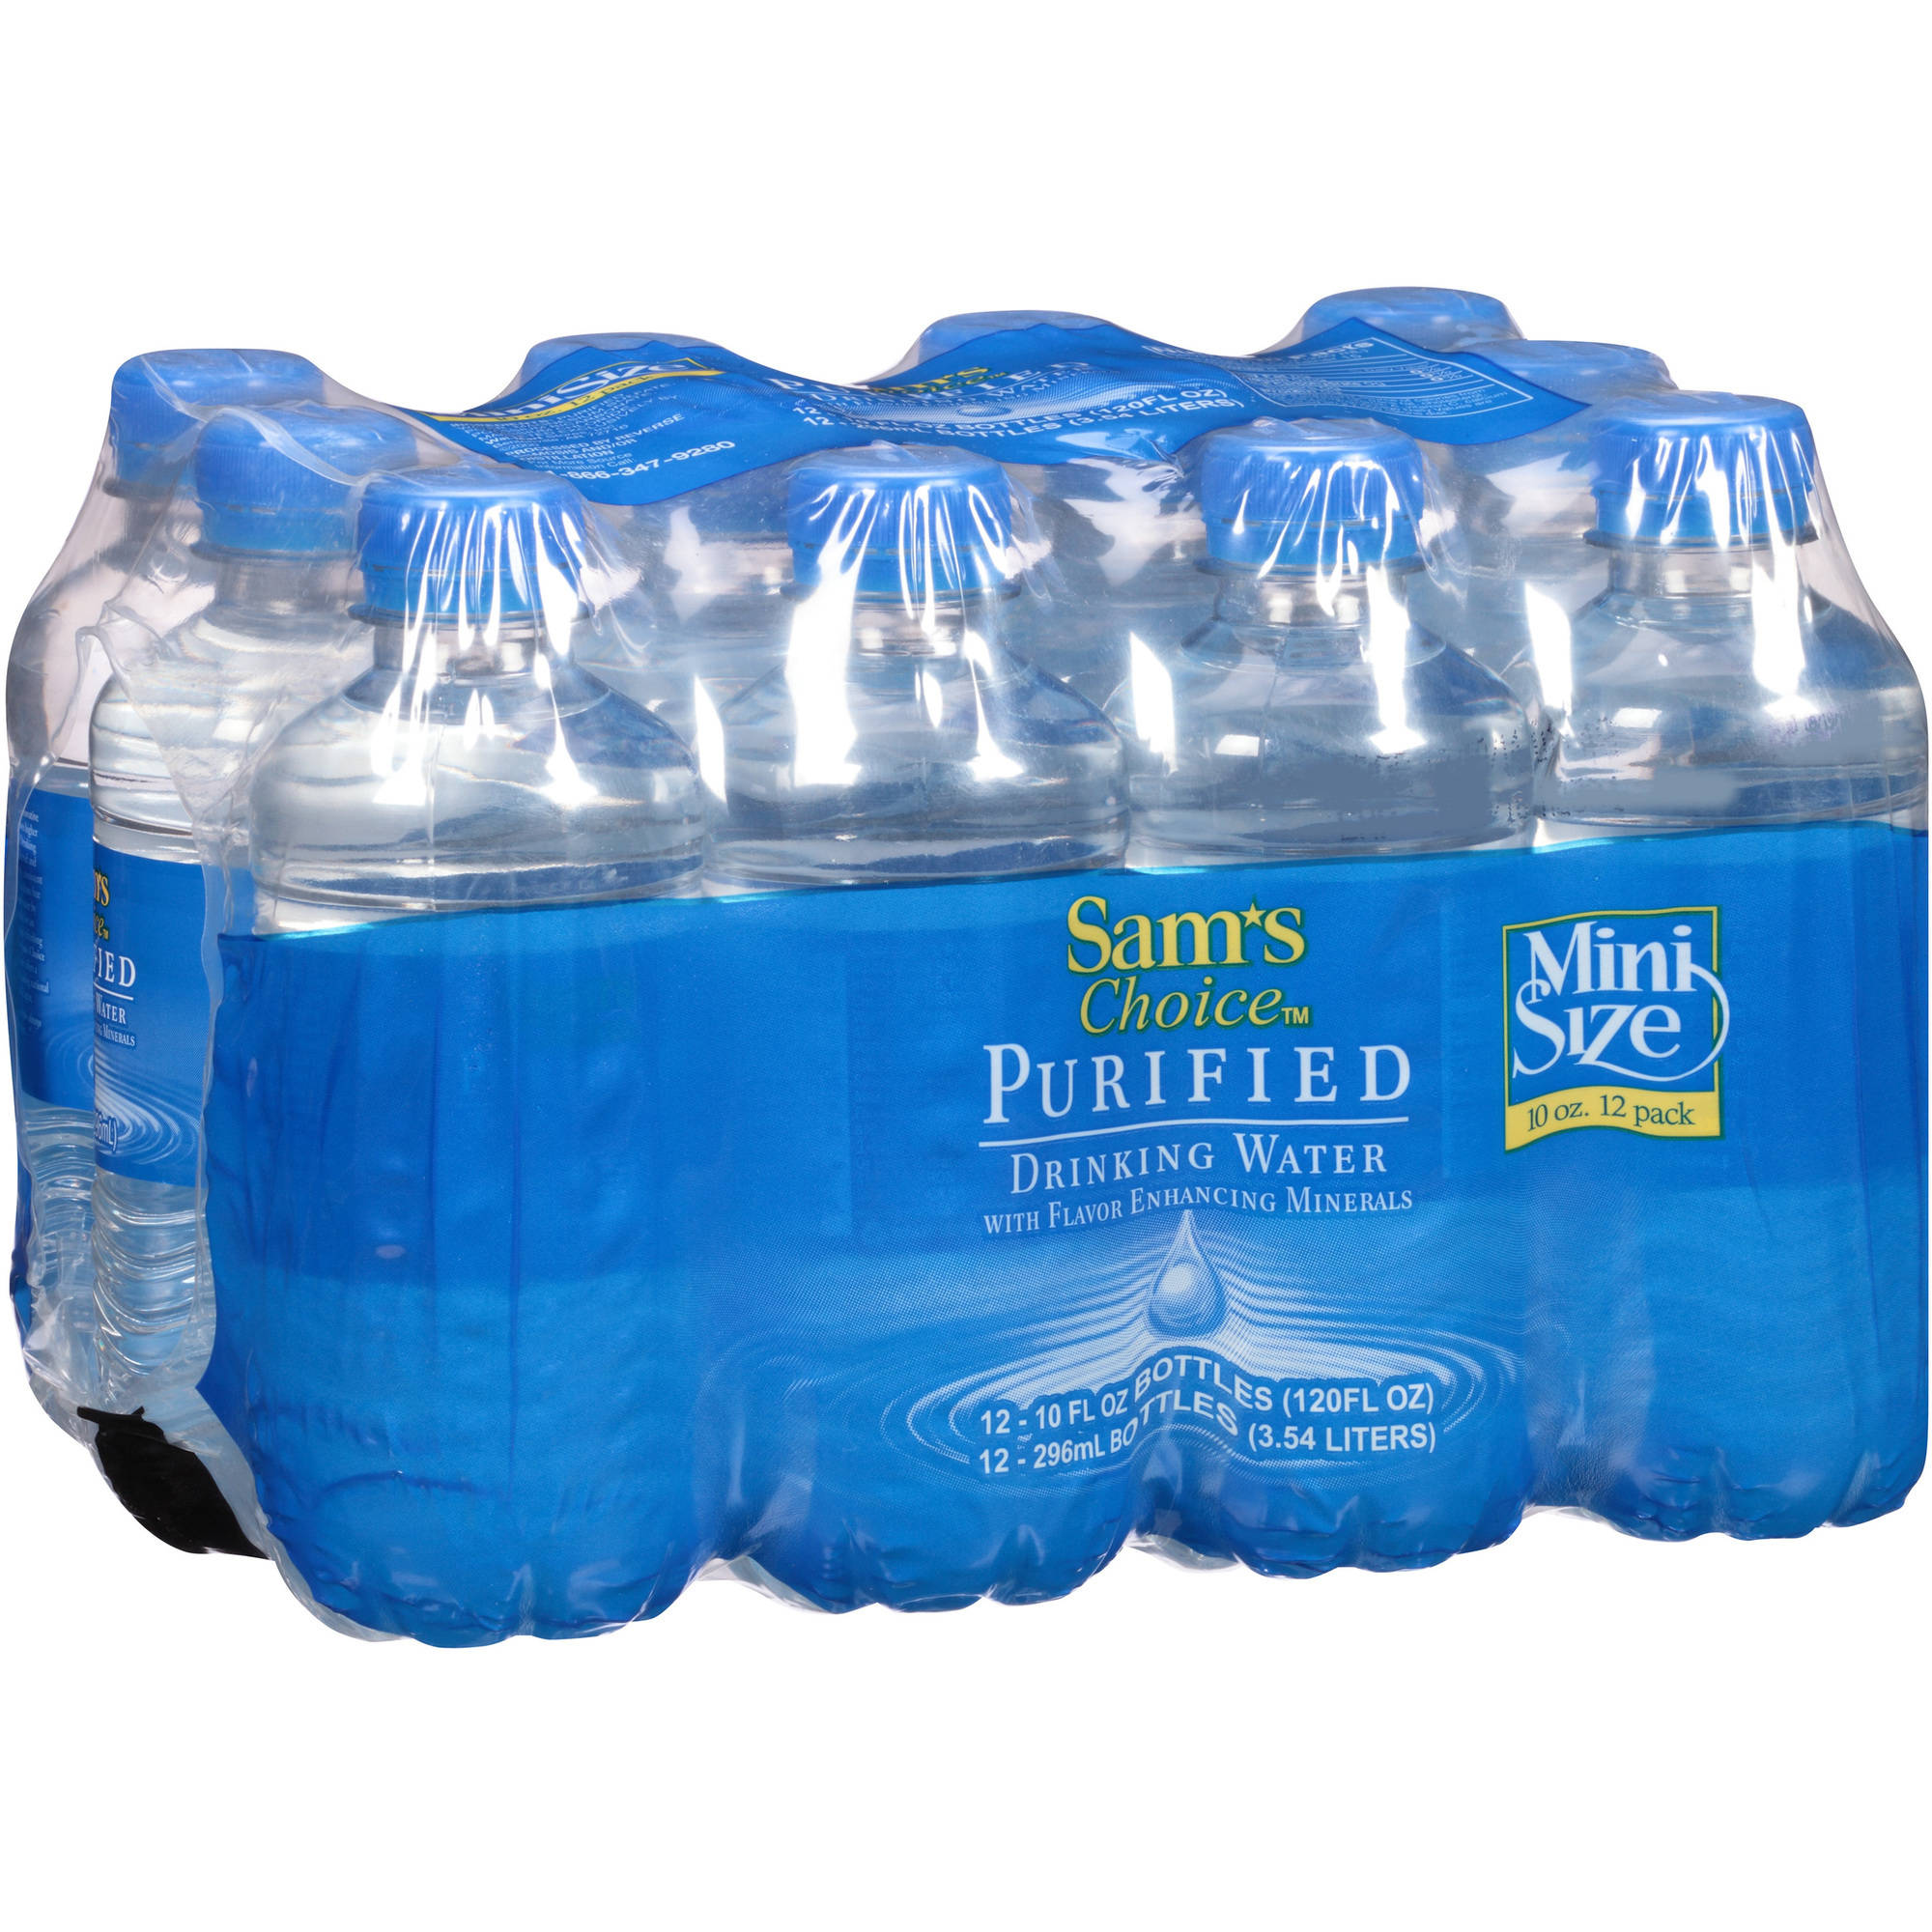 Sam's Choice Purified Drinking Water, Mini Size, 12 Count